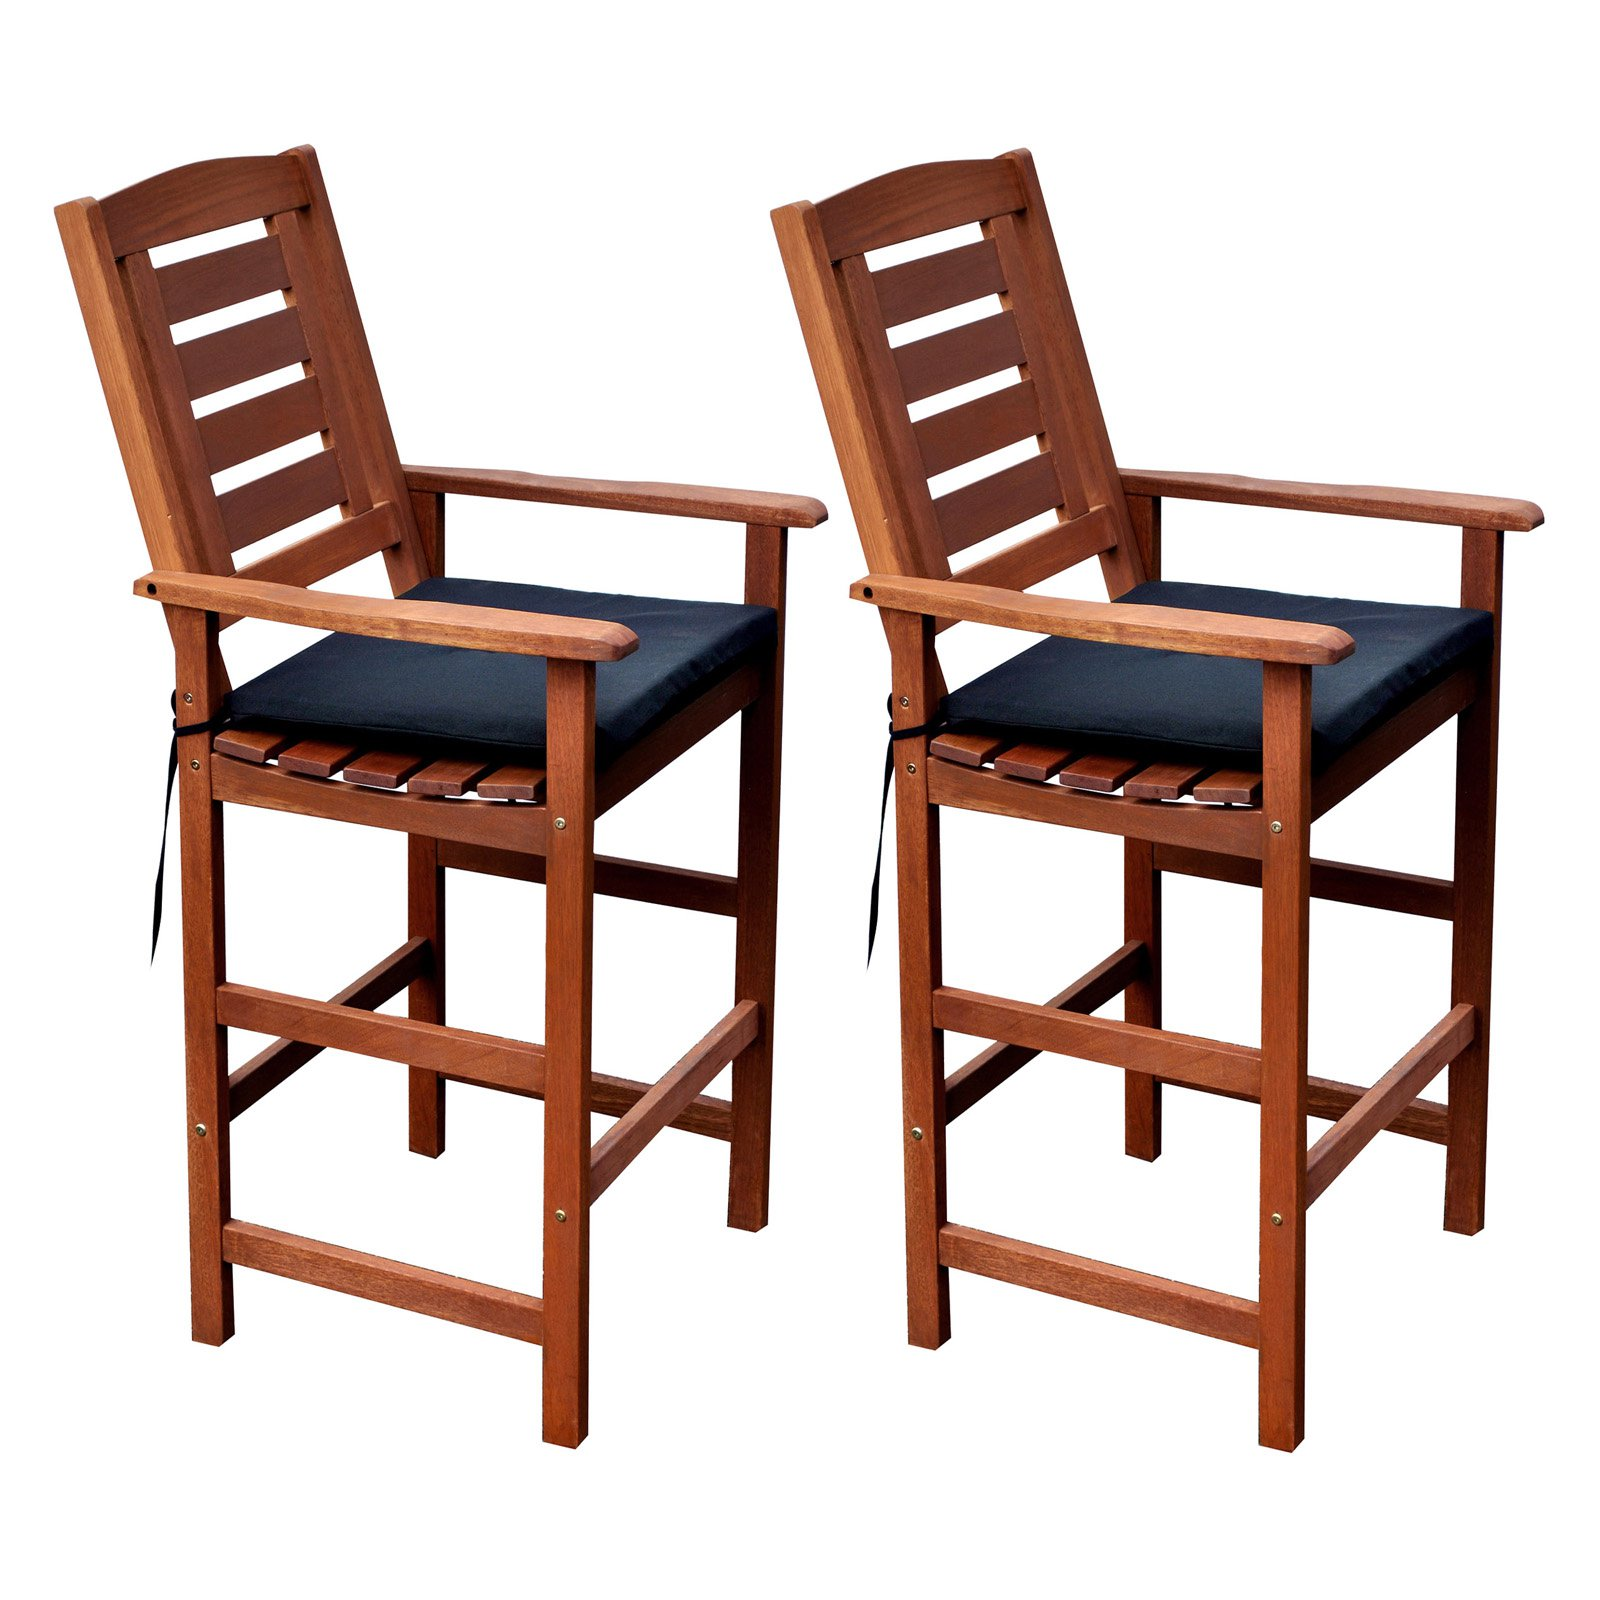 CorLiving Cinnamon Brown Hardwood Outdoor Bar Height Chairs, Set of 2